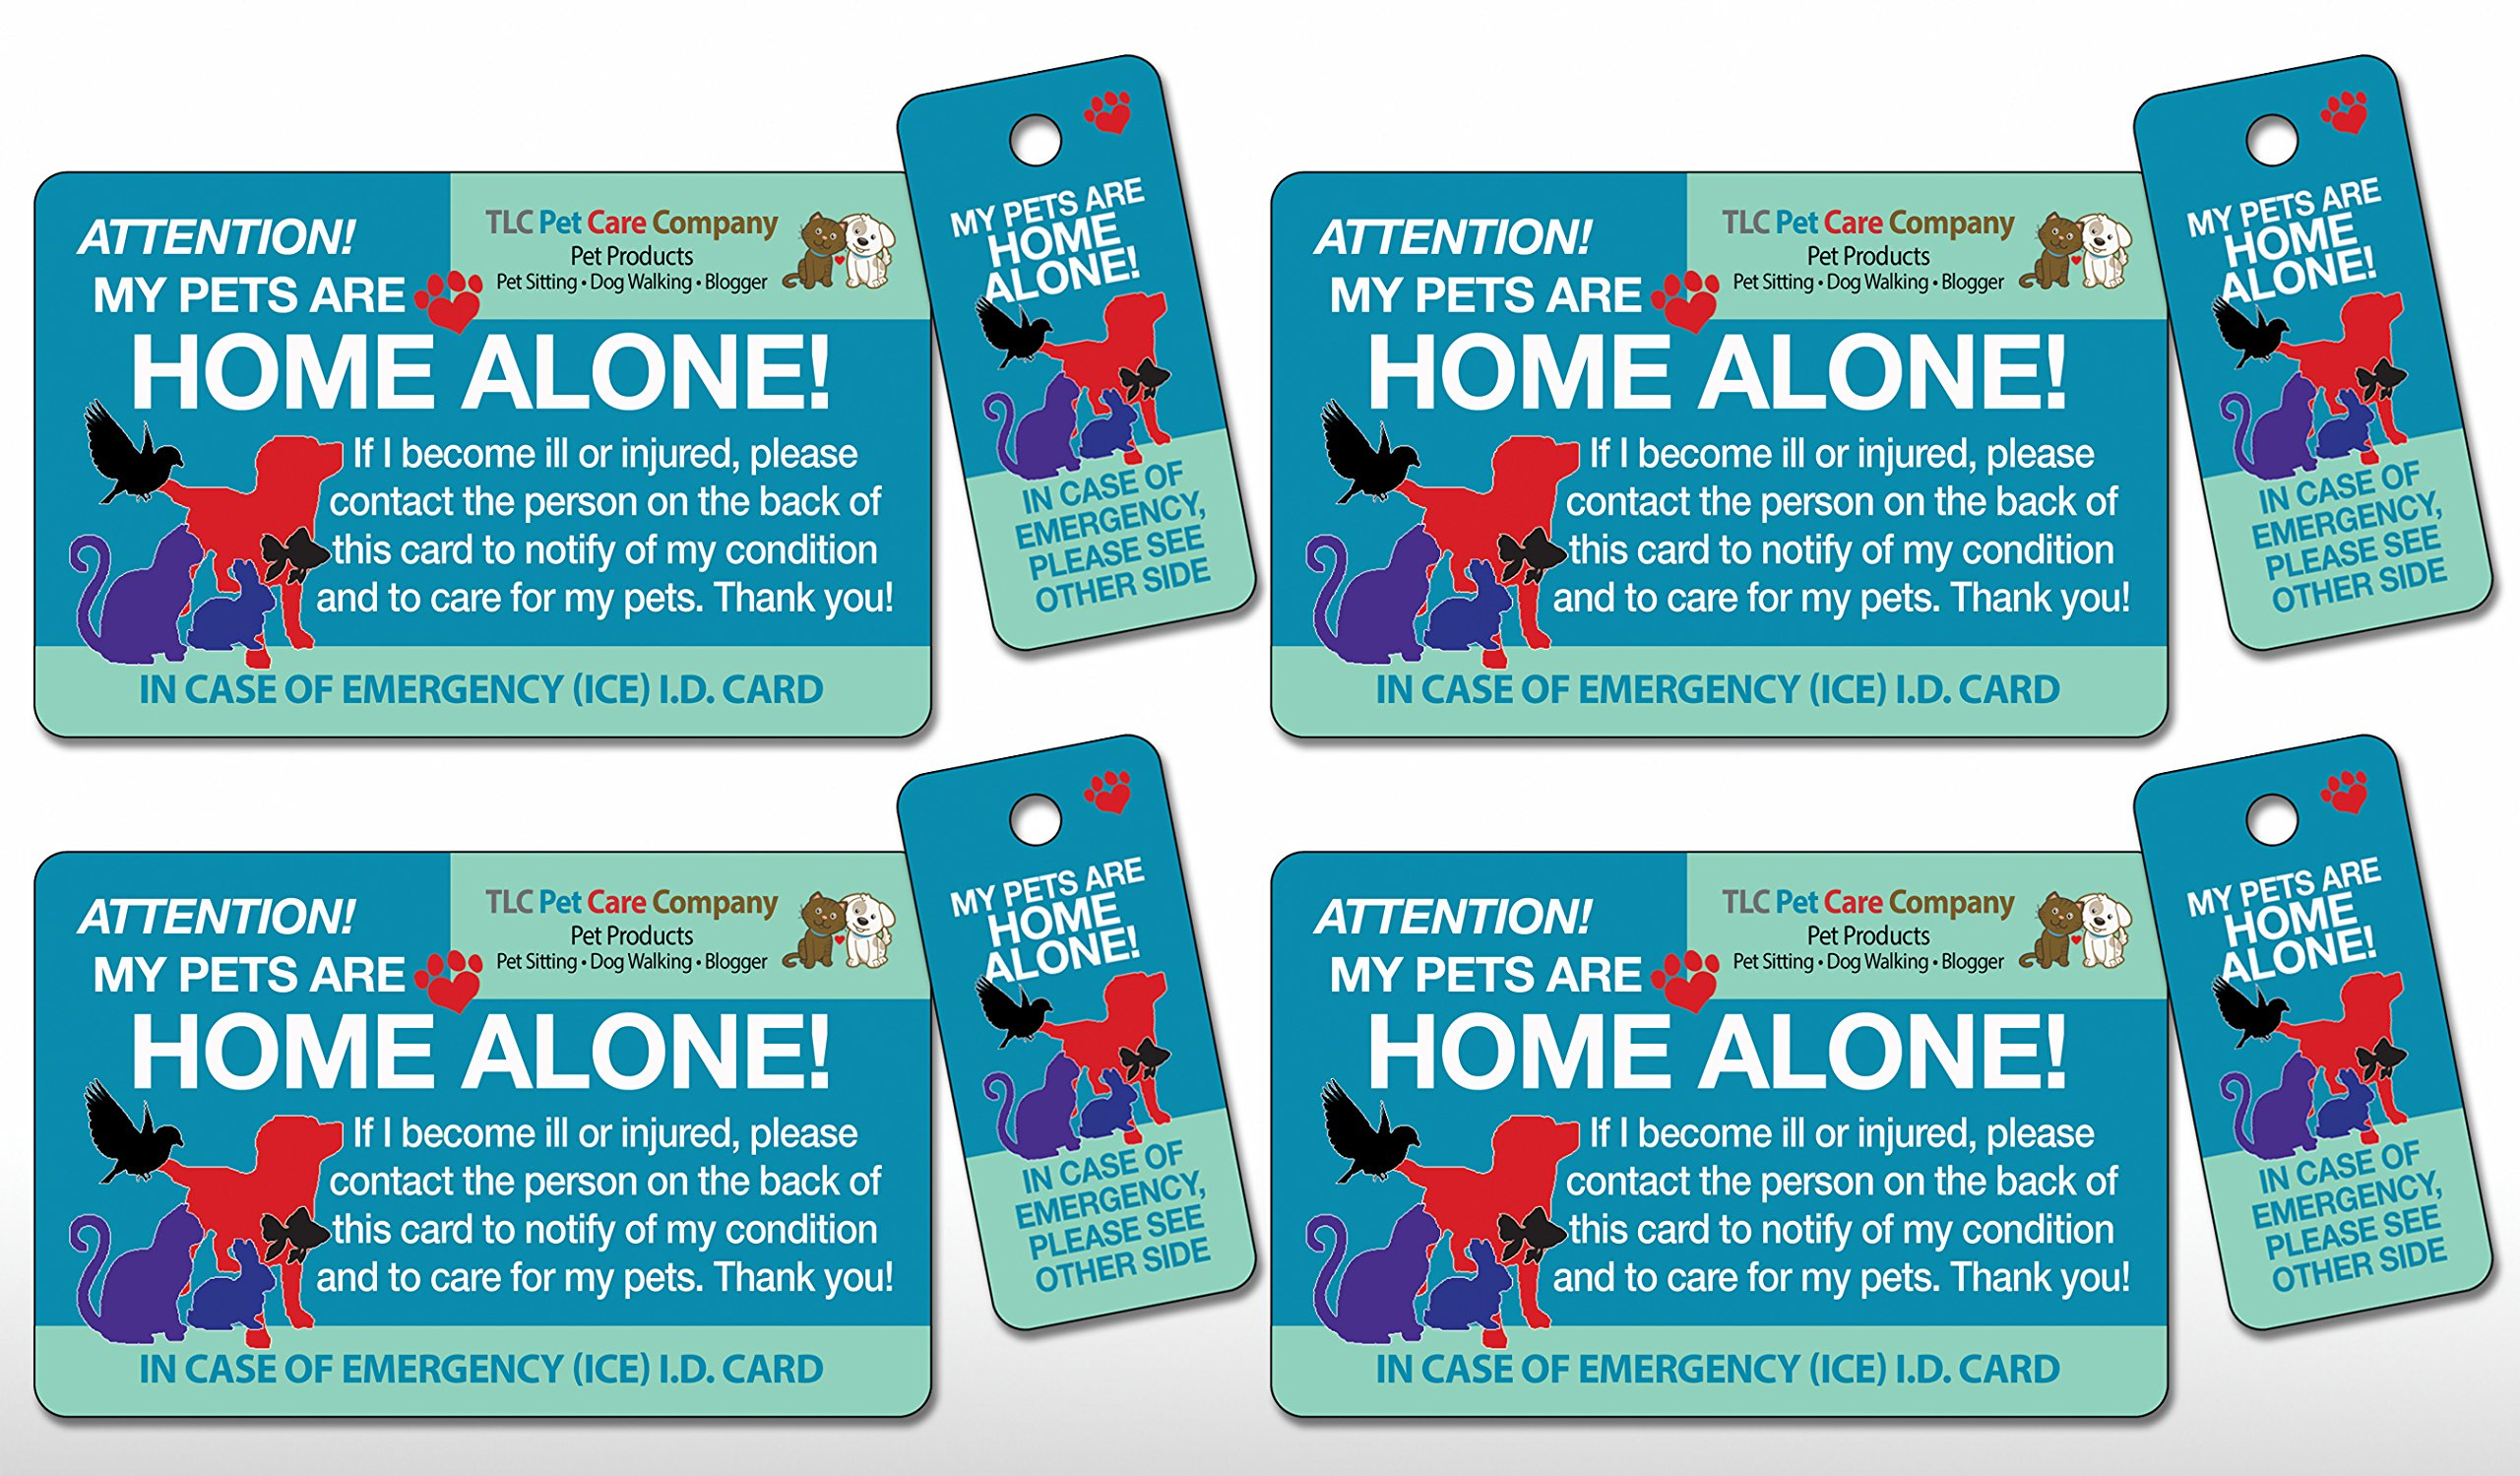 4 pk. Original Trademarked My Pets are Home Alone Alert Emergency Medical ICE ID Plastic Contact Wallet Card and Key Tag Dogs Cats with Emergency Contact Call Card (Qty. 4 from TLC)